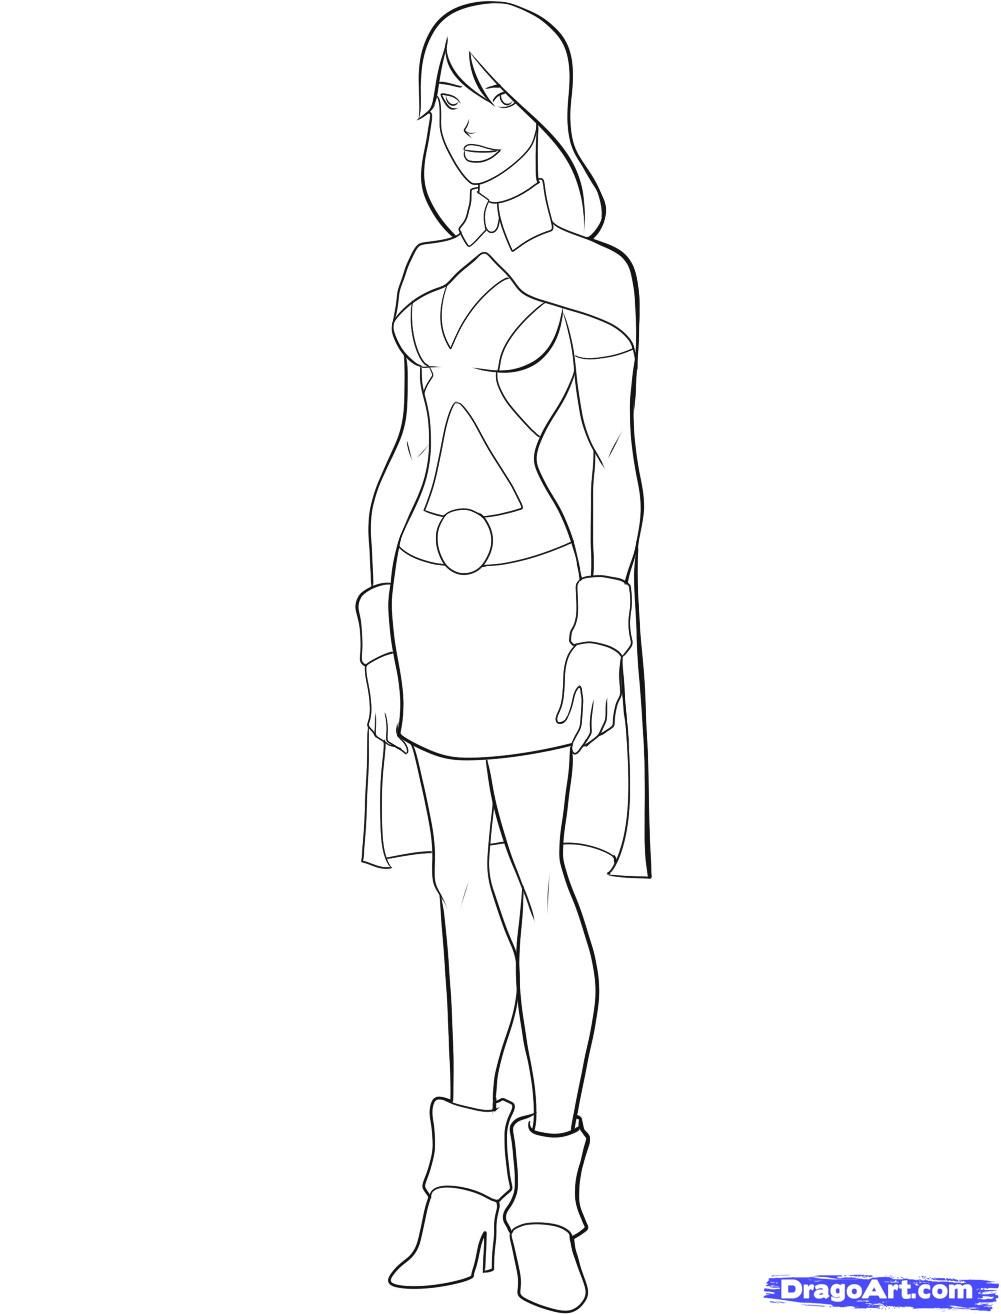 Young Justice Superboy Coloring Pages Pin by tiger lily on draw ...